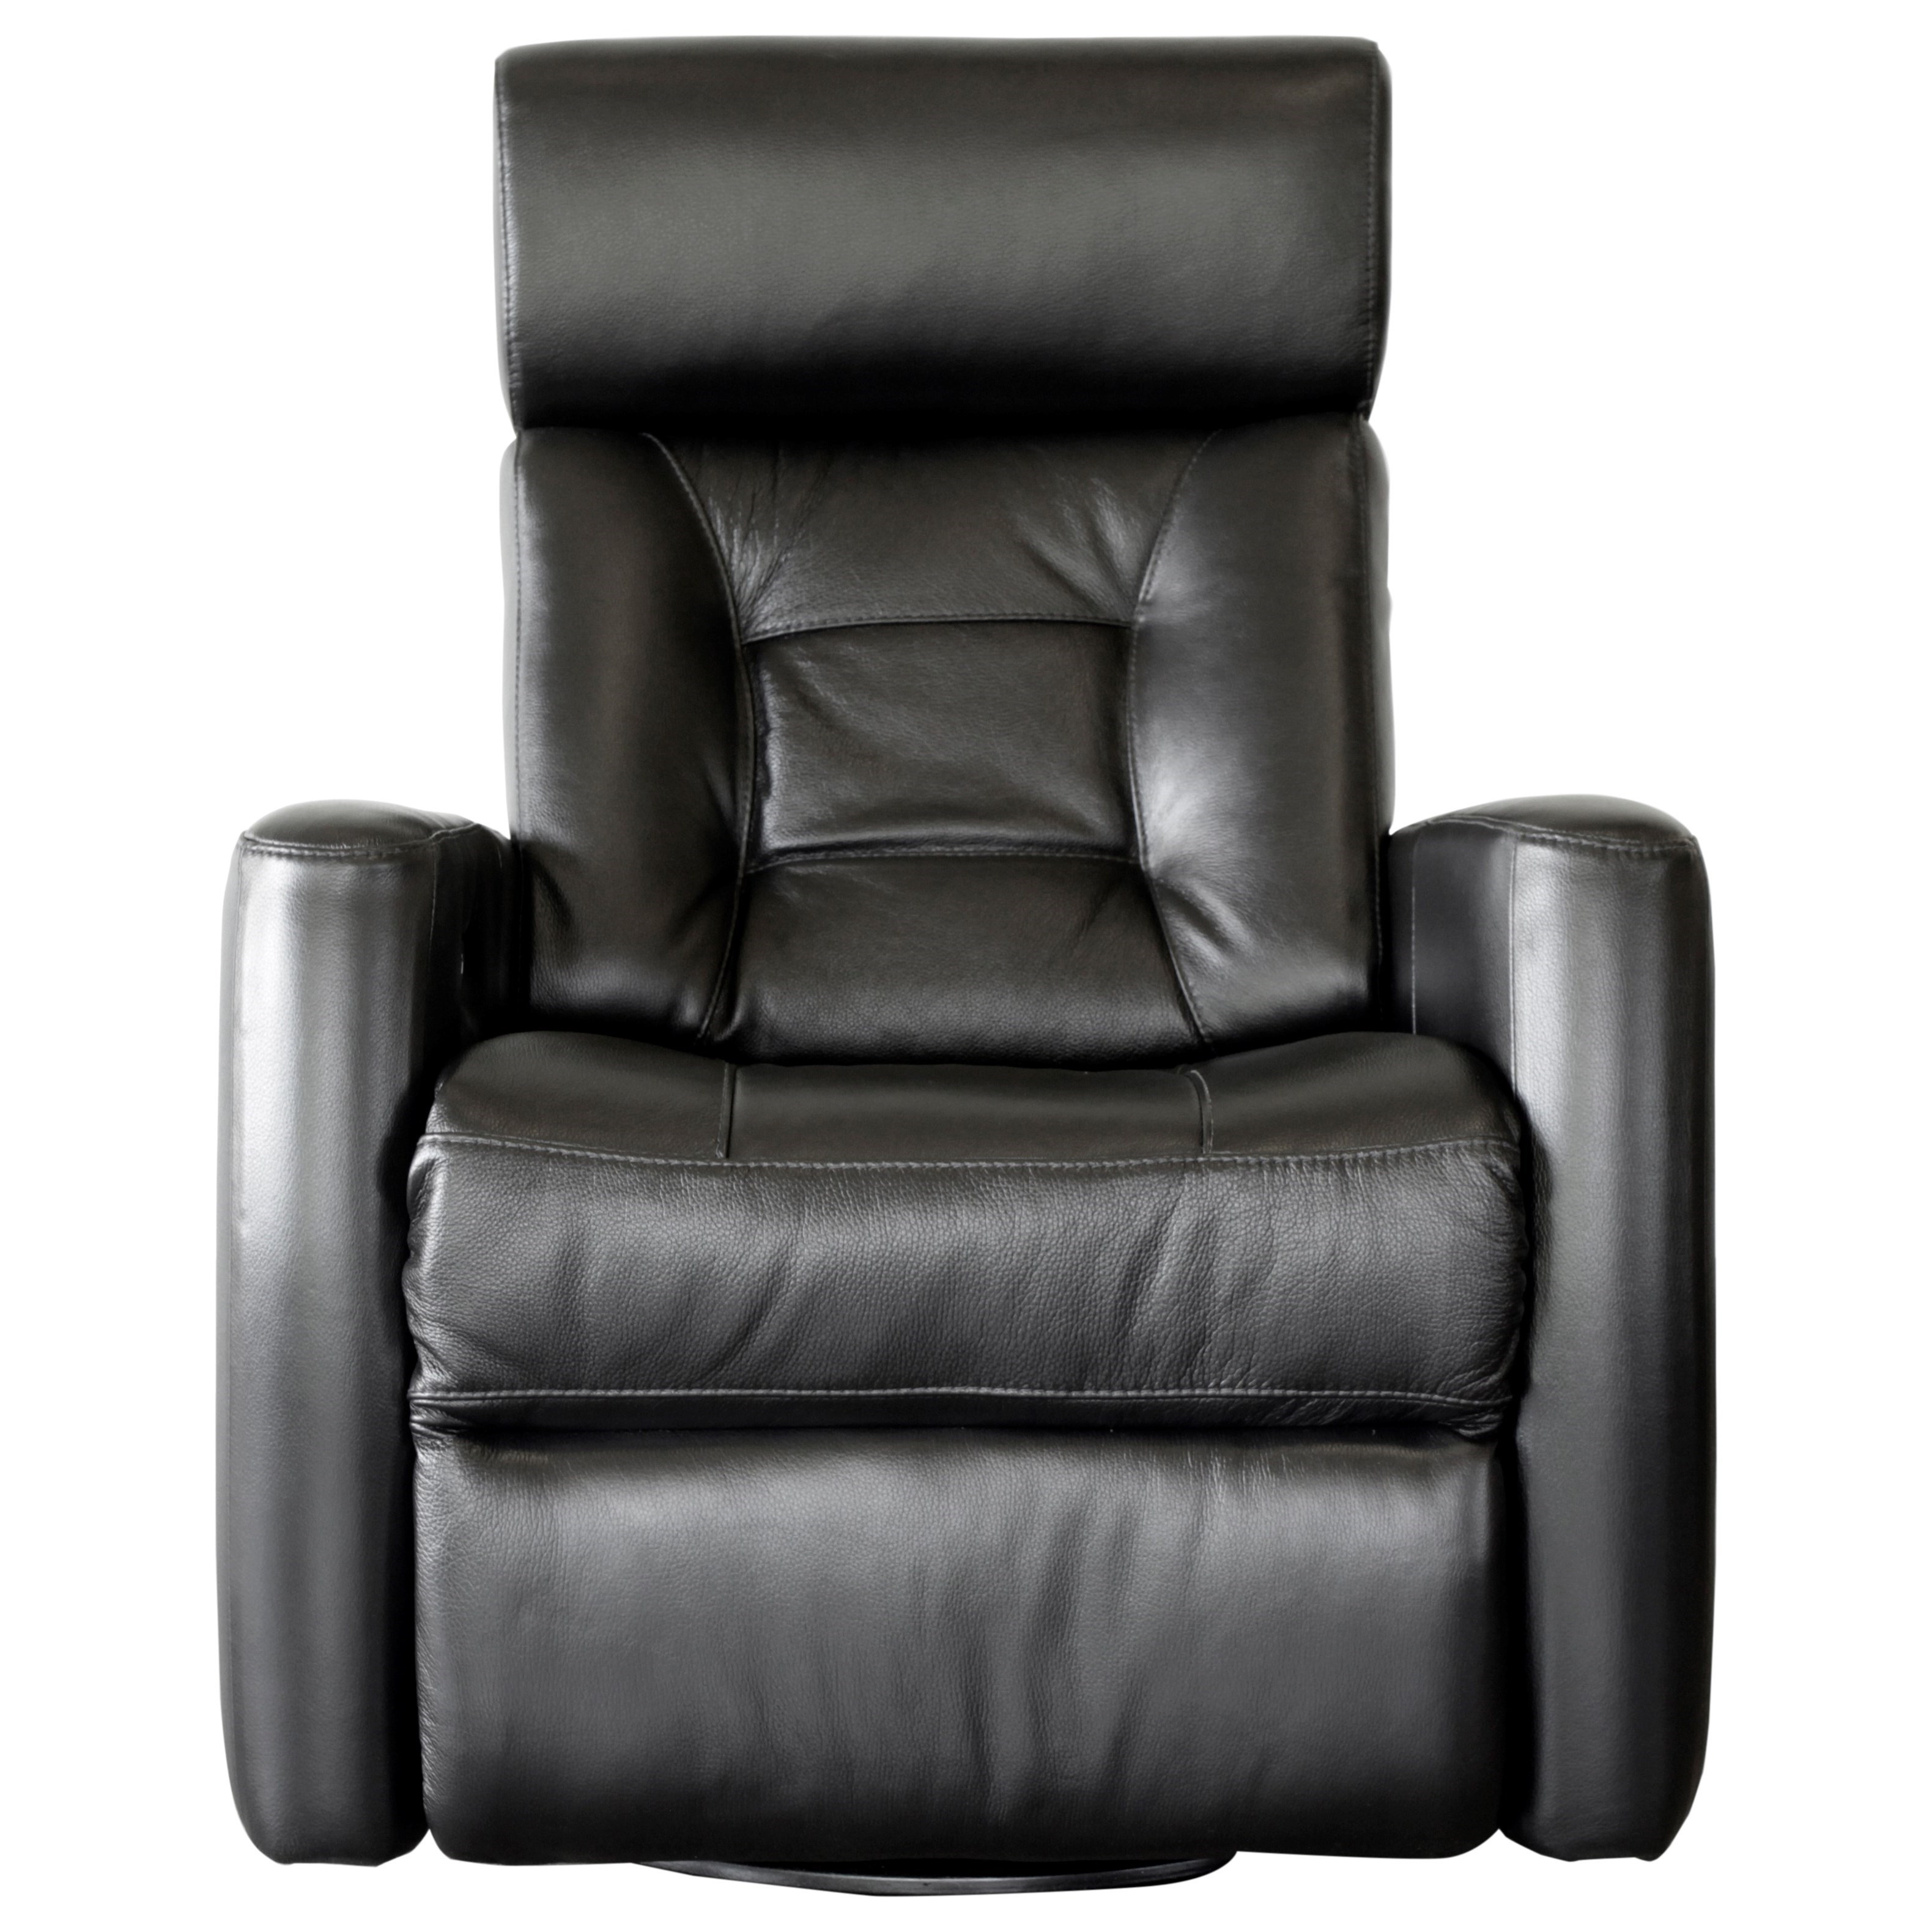 Baltic II Power Swivel Gliding Recliner by Palliser at HomeWorld Furniture